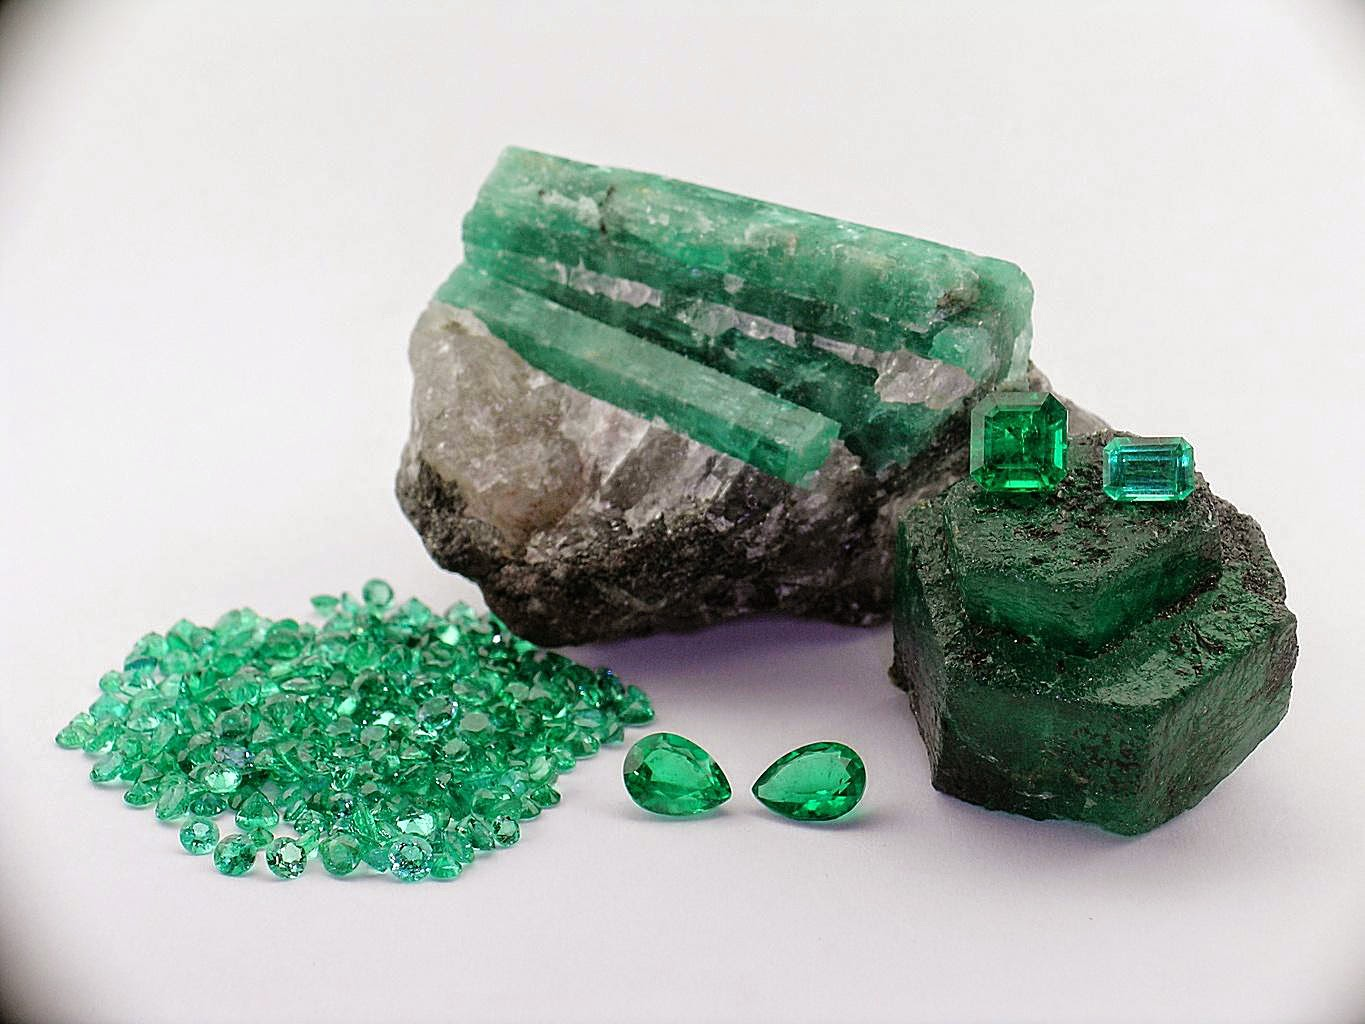 Amazon Pueblo Blog: Emeralds for the Amazon: Stories from ... - photo#23